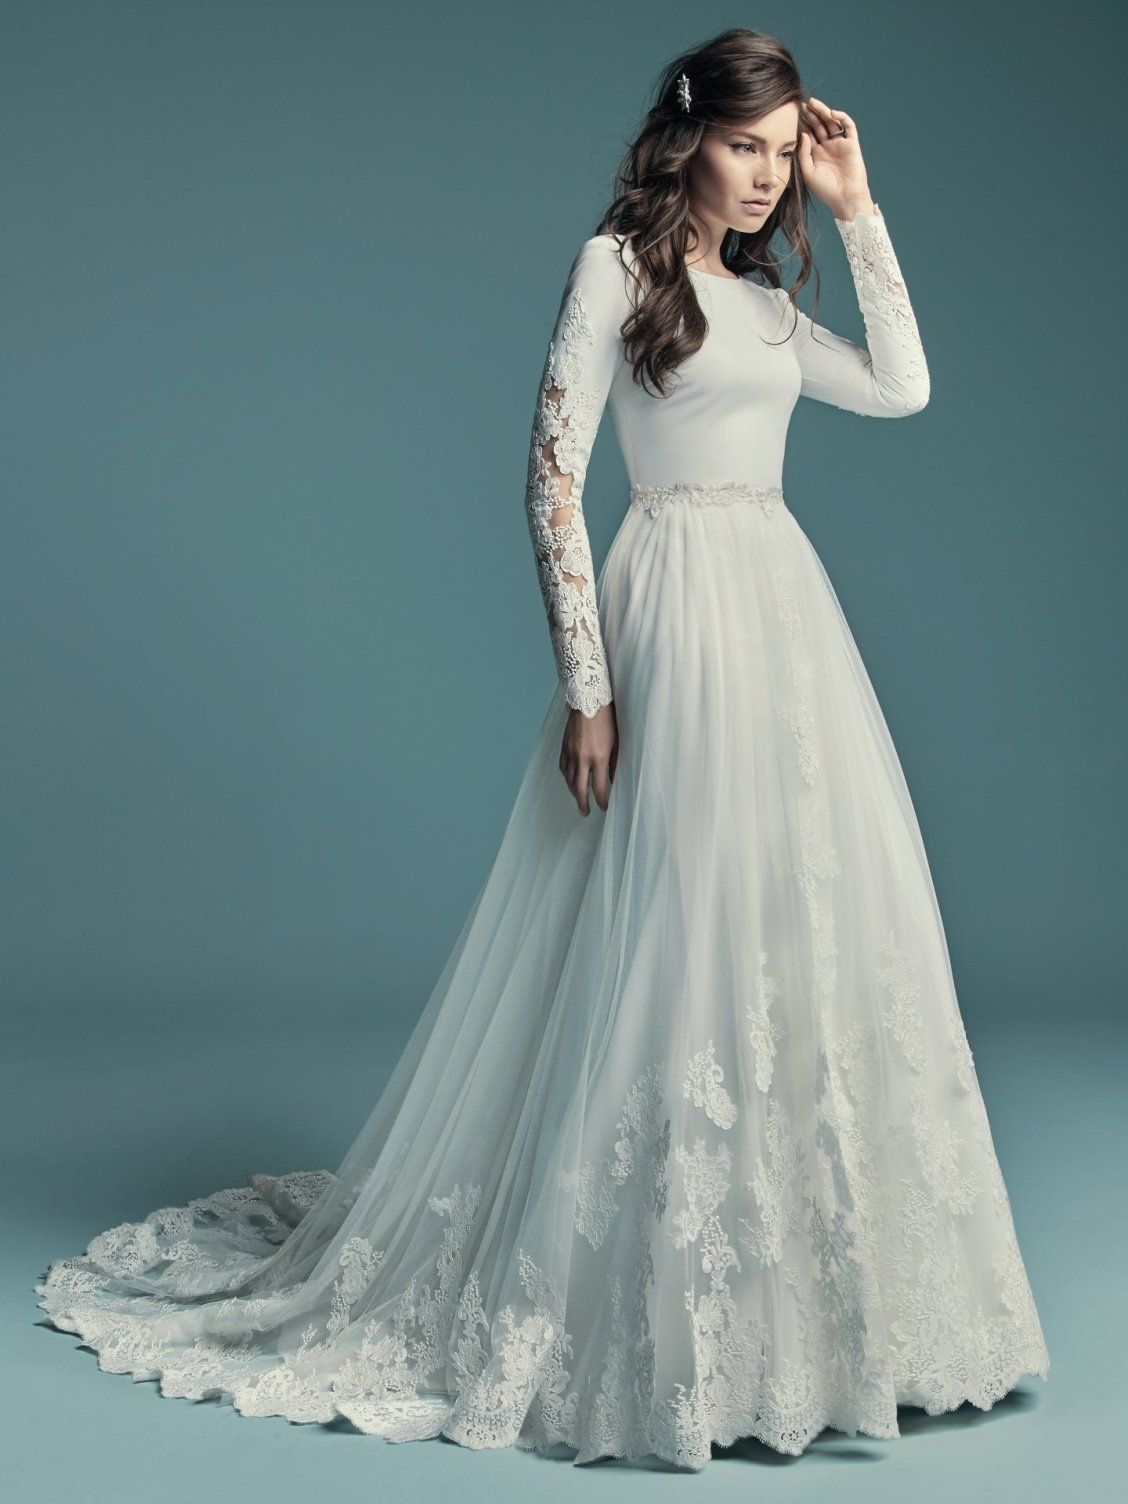 Olyssia By Maggie Sottero Wedding Dresses Wedding Dress Long Sleeve Wedding Dress Sleeves Wedding Dresses